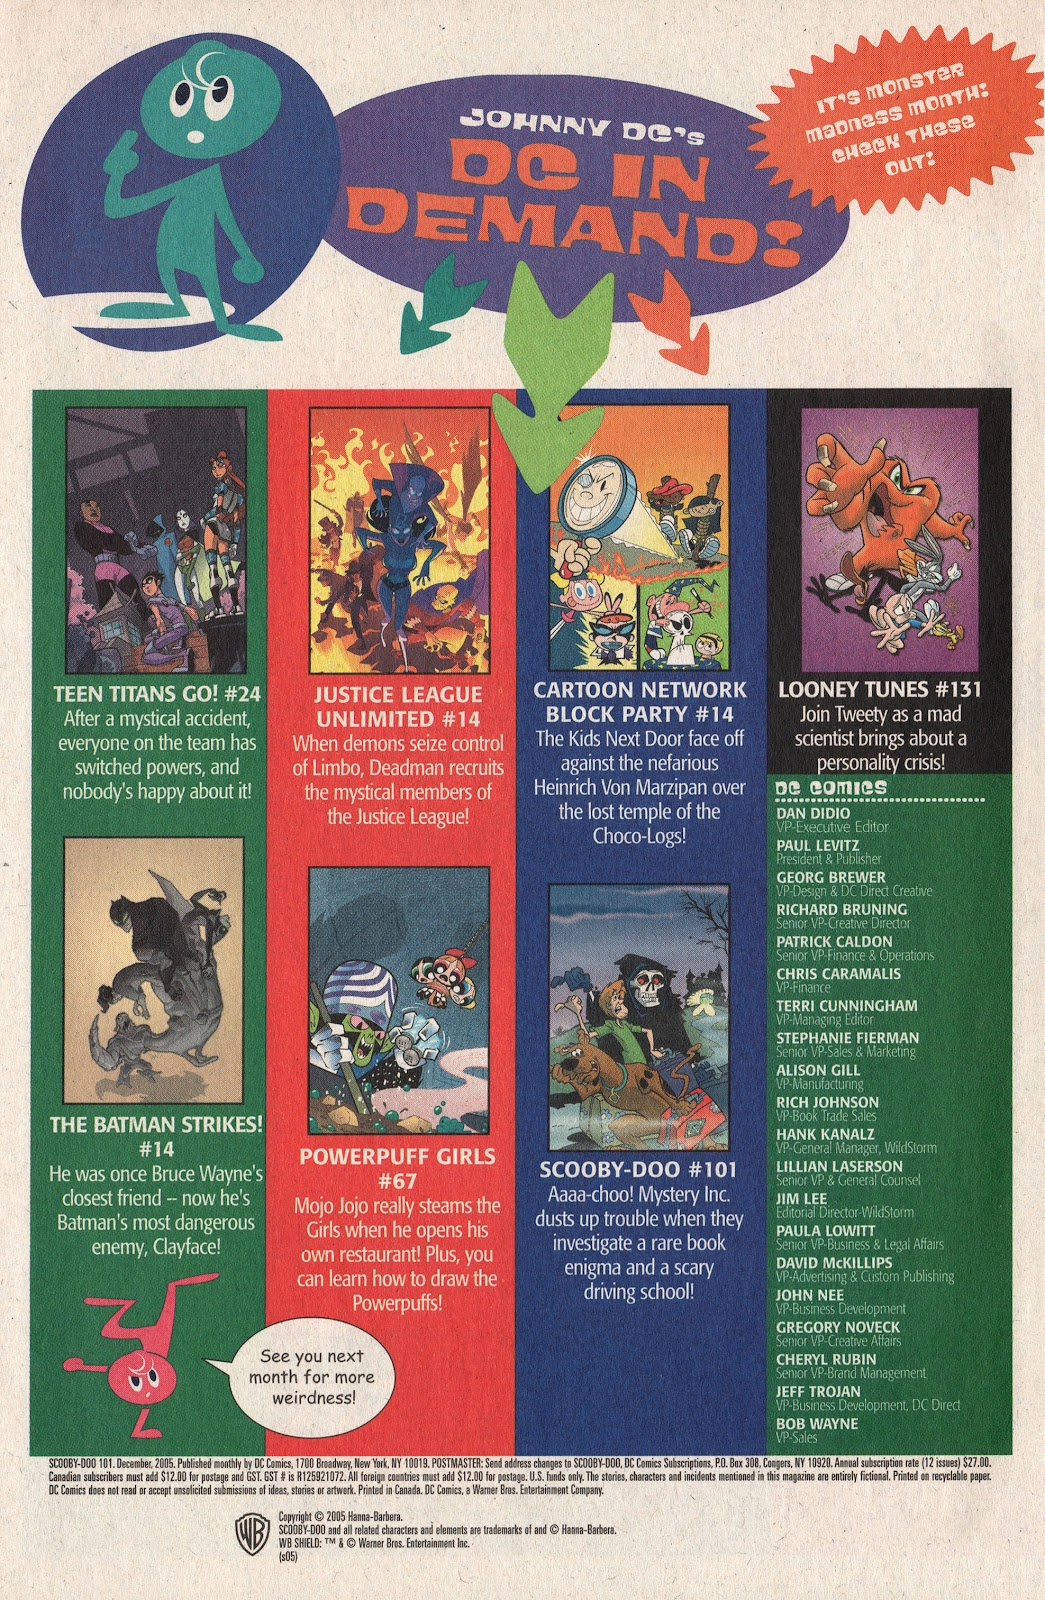 Read online Scooby-Doo (1997) comic -  Issue #101 - 50